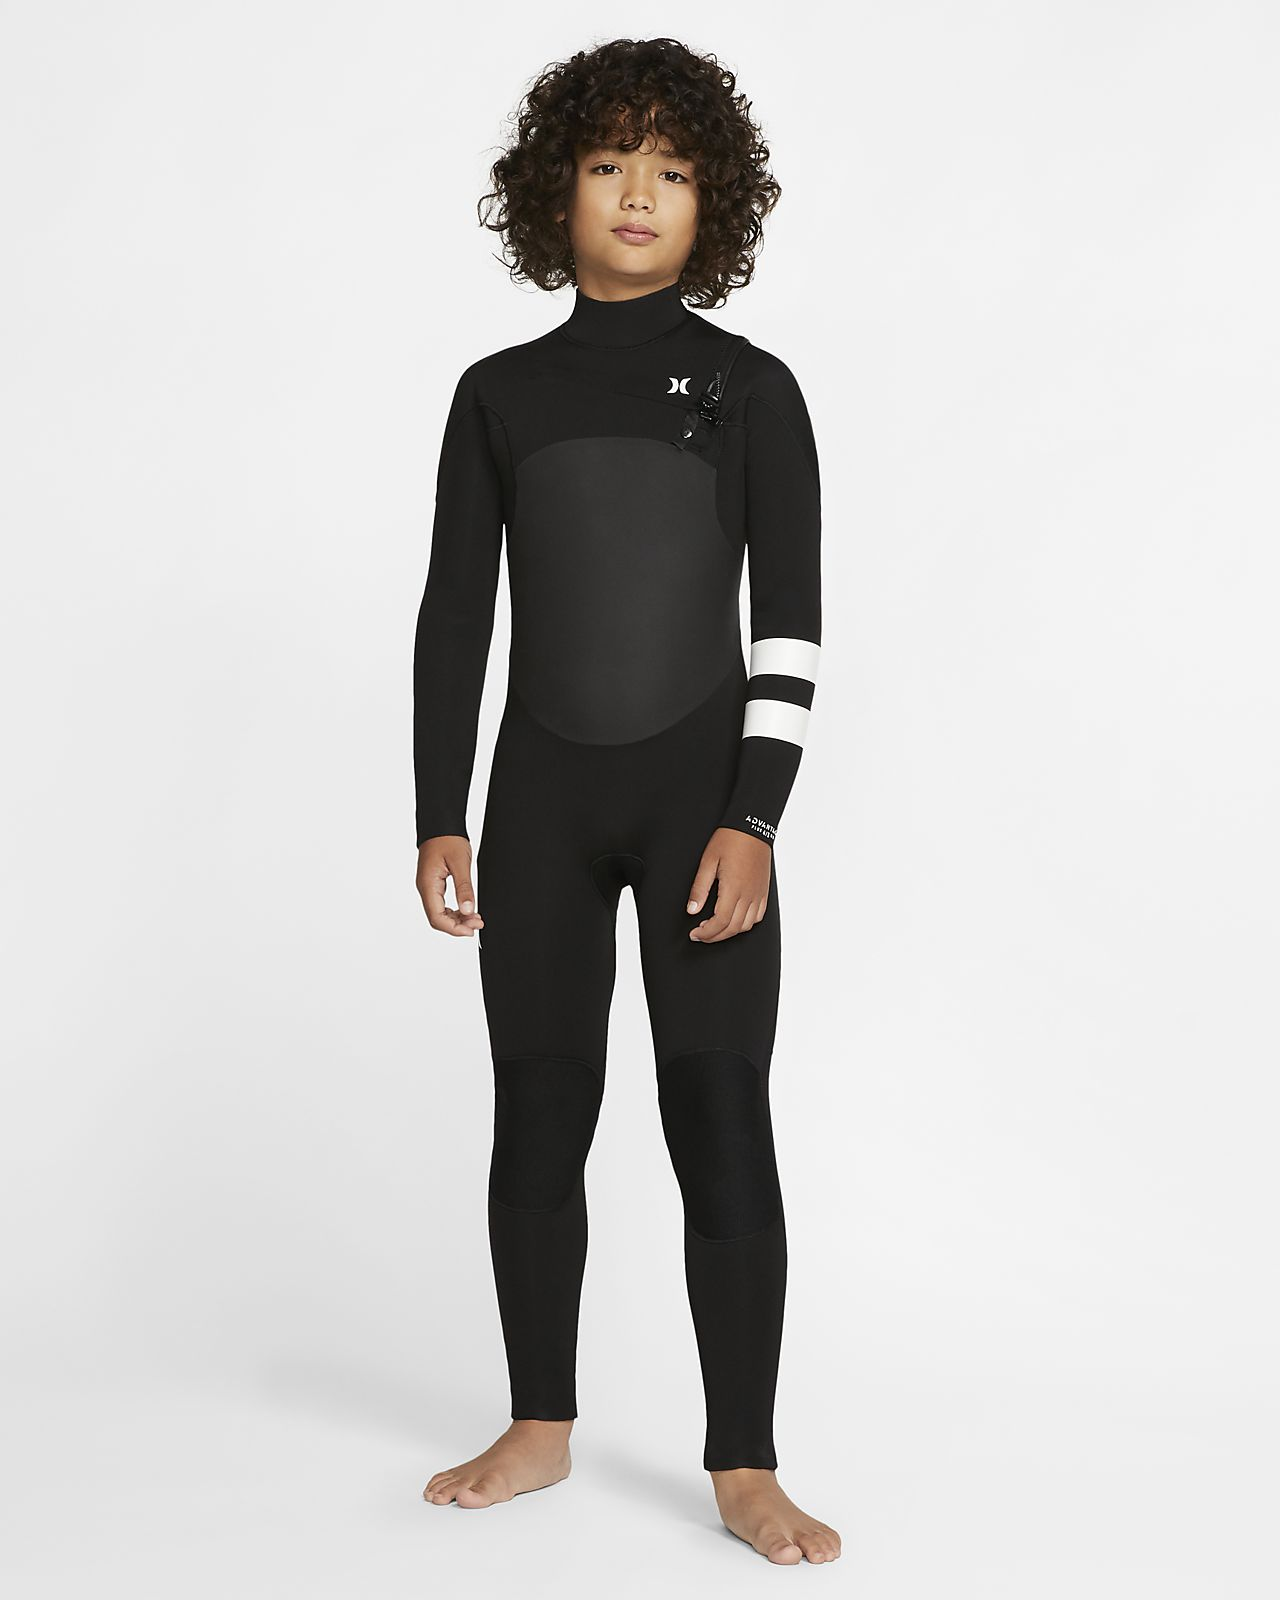 Hurley Advantage Plus 4/3mm Fullsuit Kids' Wetsuit